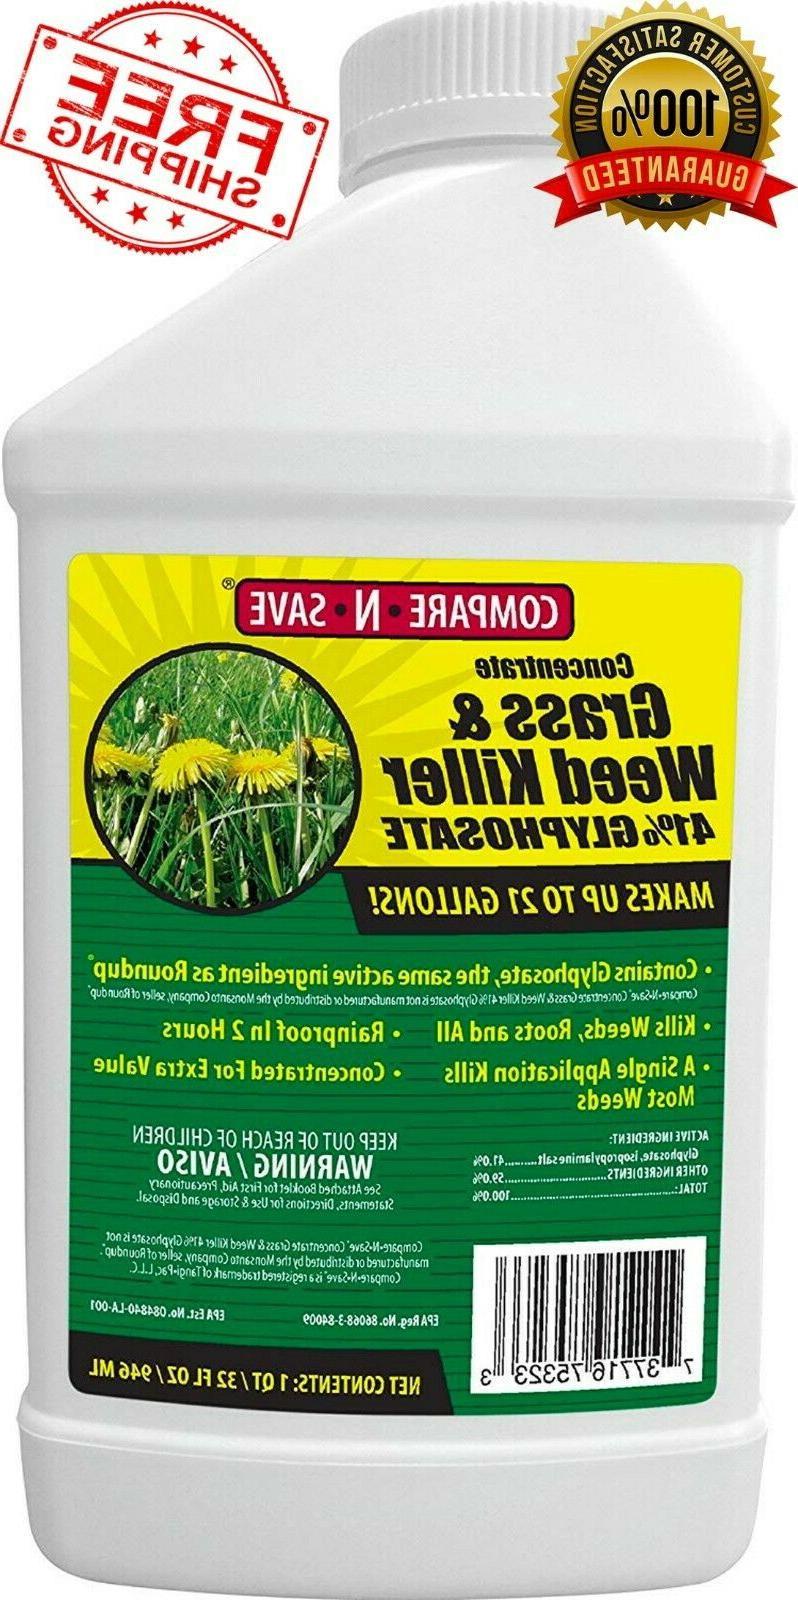 Concentrate Grass & Weed Killer 41-Percent Glyphosate 32 FL